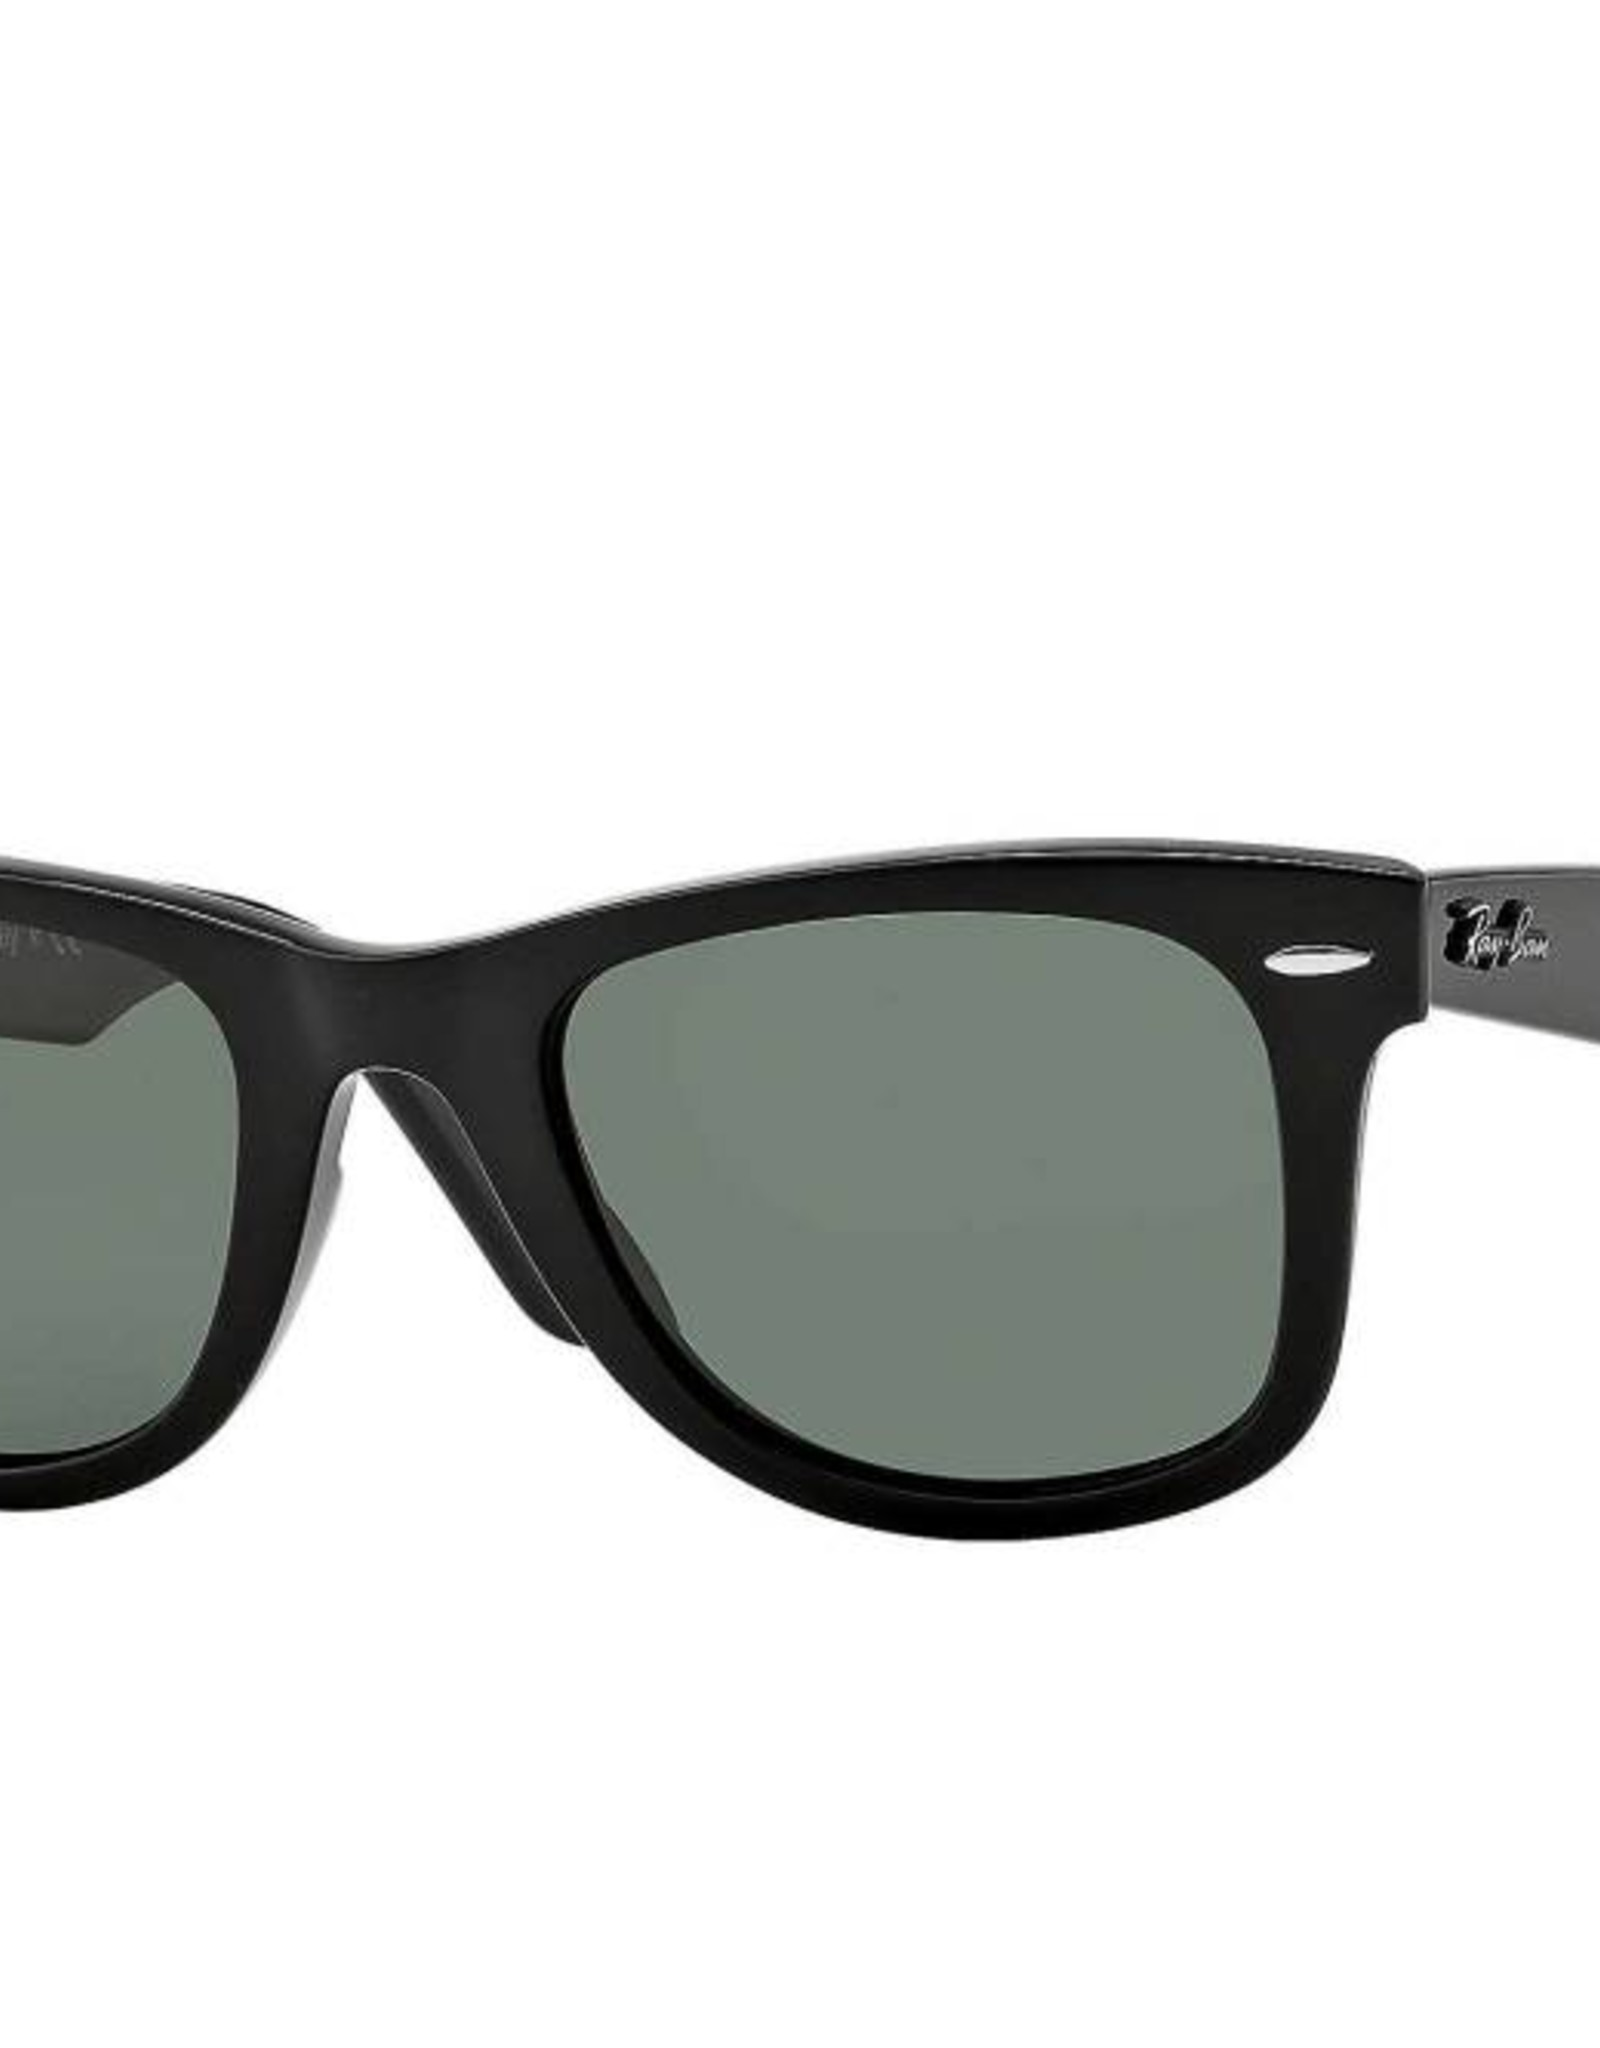 Ray-Ban Ray-Ban - ORIGINAL WAYFARER 50 (901/58) - Black w/ POLAR Green